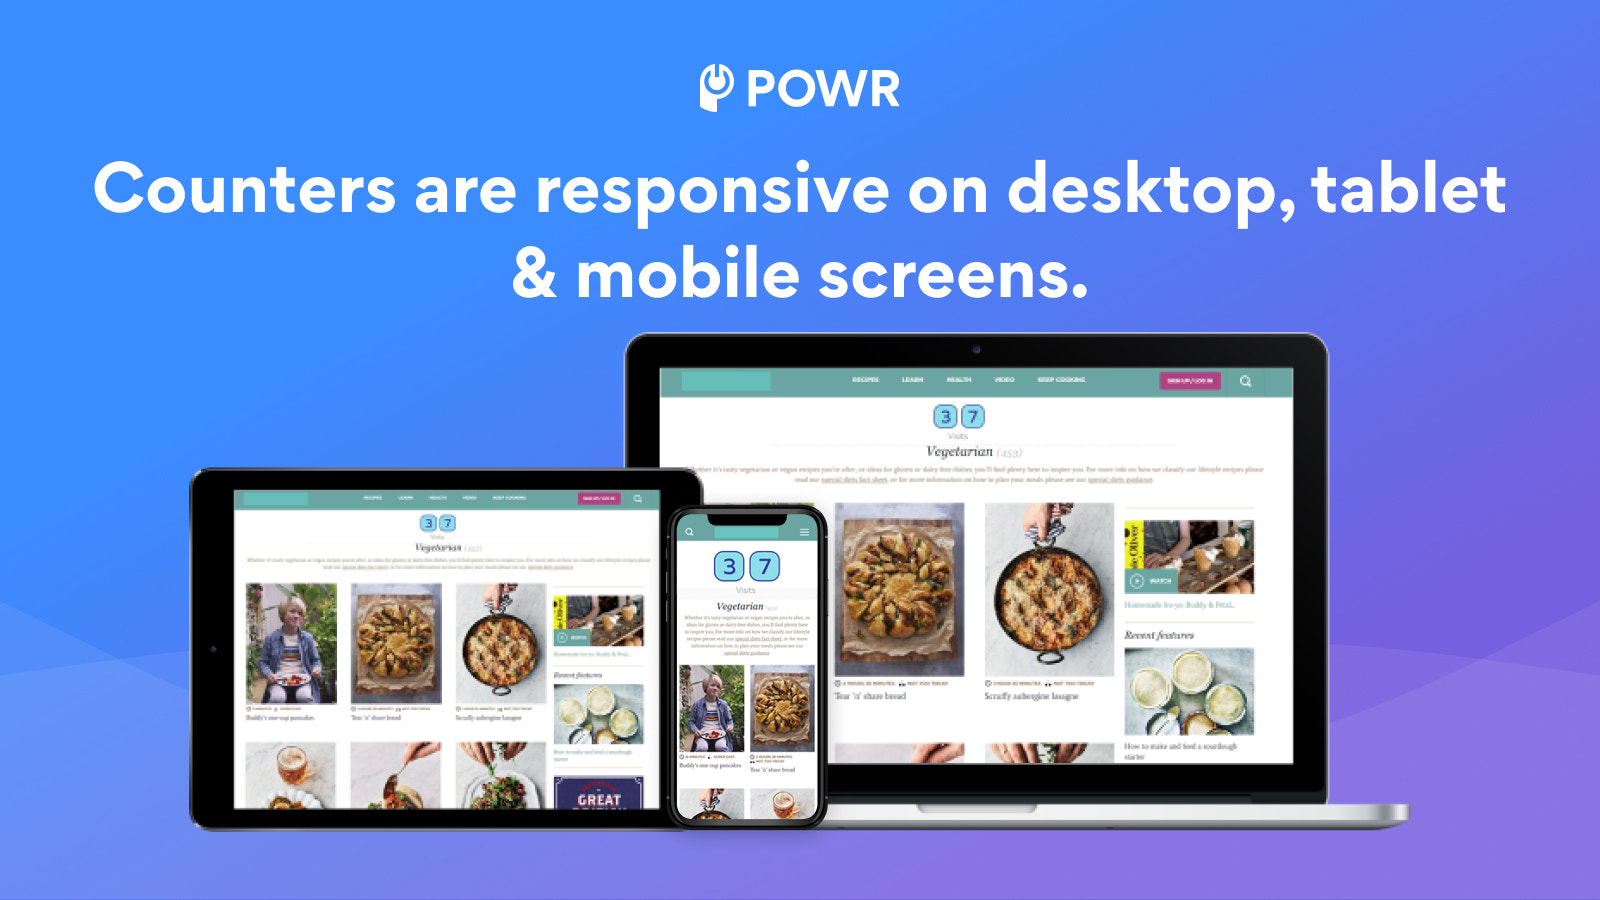 Counters are responsive on all devices.